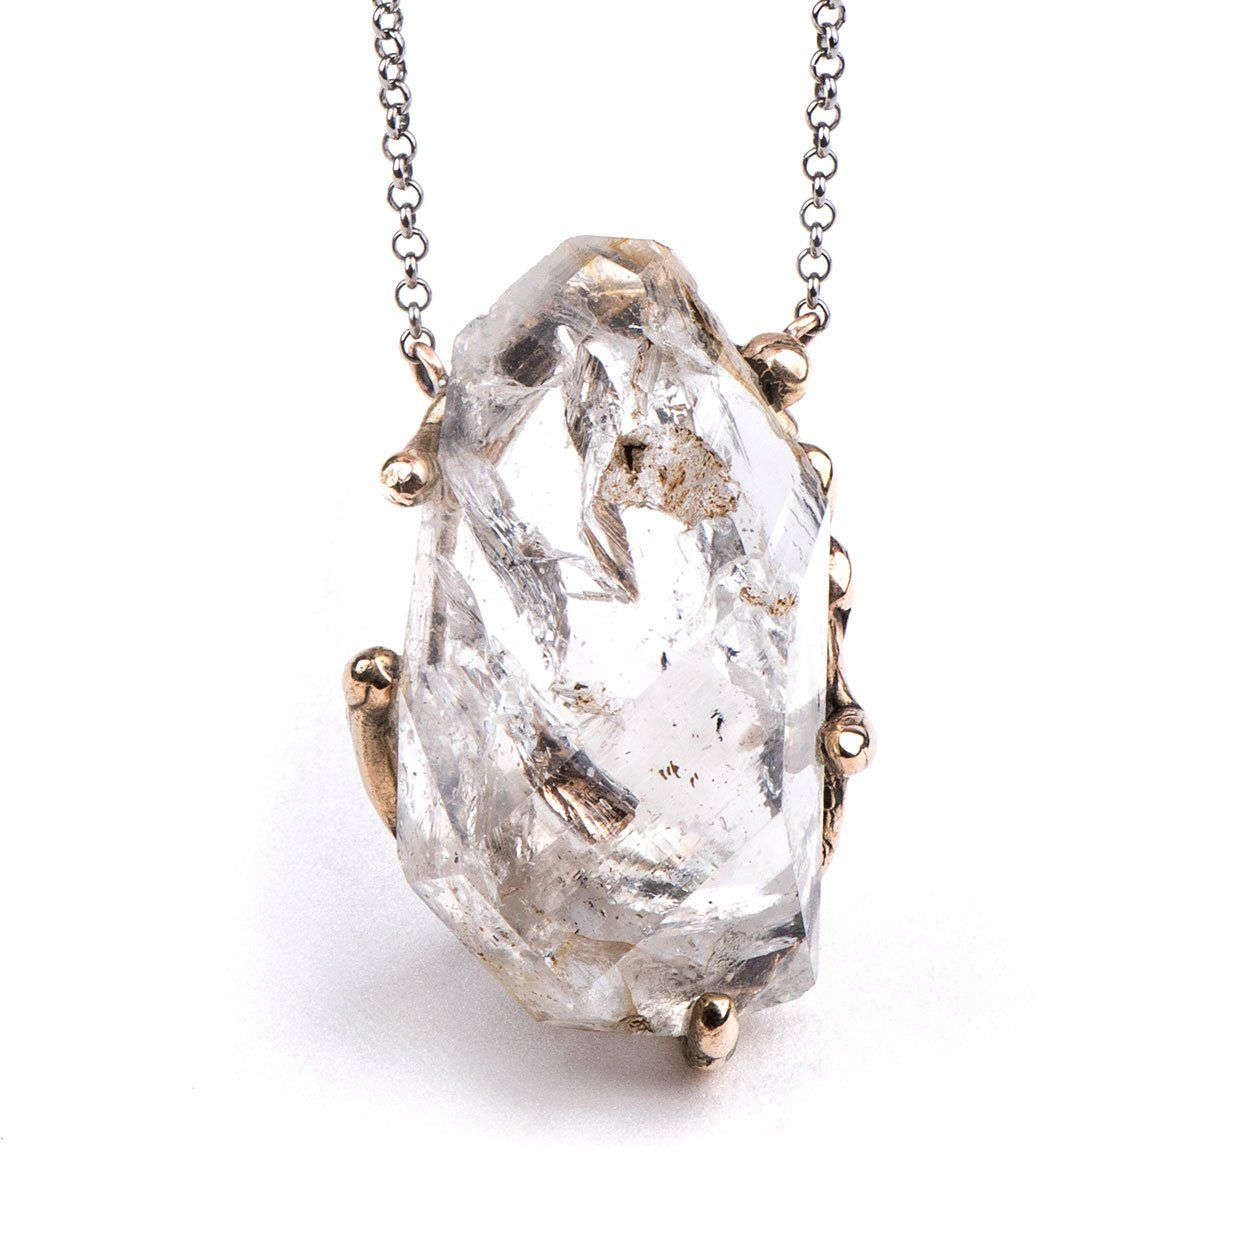 Herkimer Diamond Necklace - One of a kind for men and women